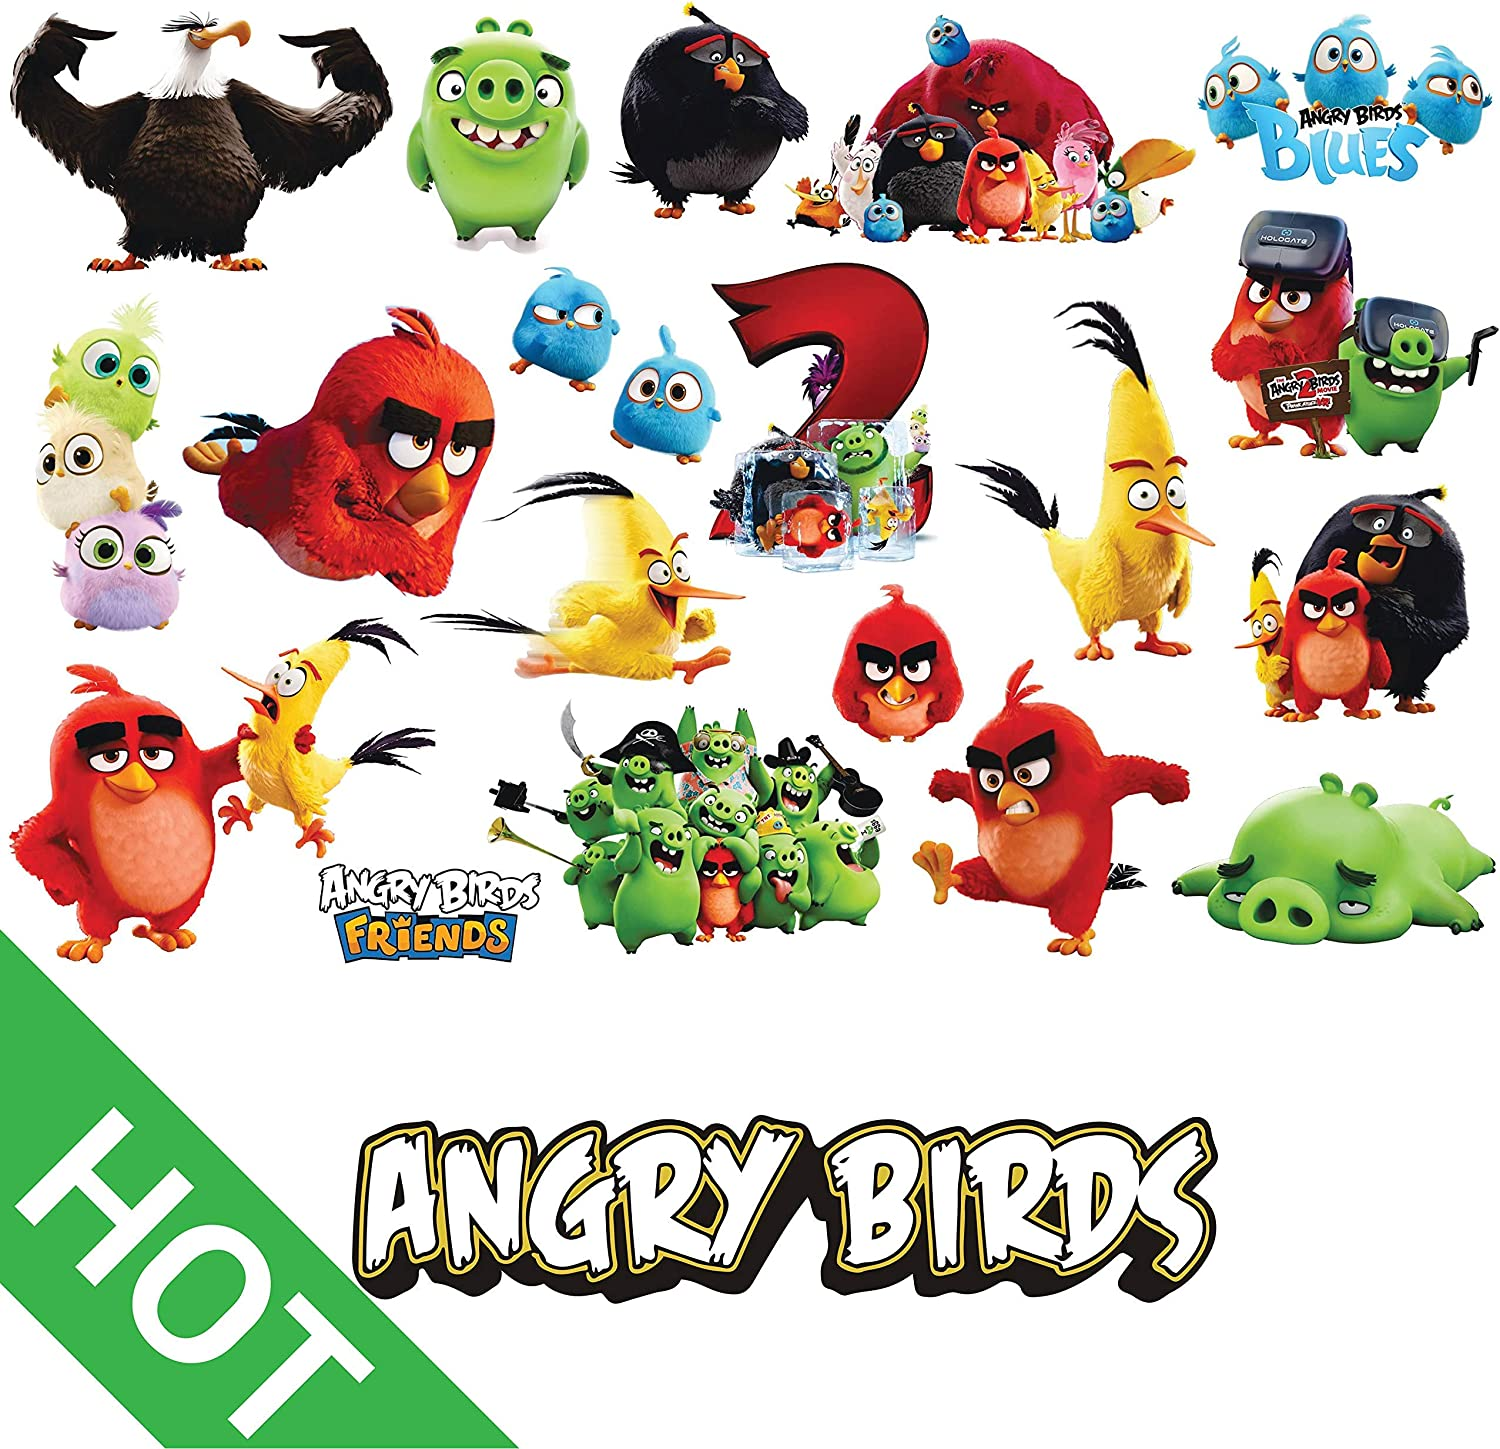 Angry Birds Sticker, Waterproof Vinyl Decal with Cute Funny Angry Bird Characters for Decorating Water Bottles, Laptops, Notebook, Mobile Phone, Skate Board, Helmet, Guitar & Luggage. by H2 Studio